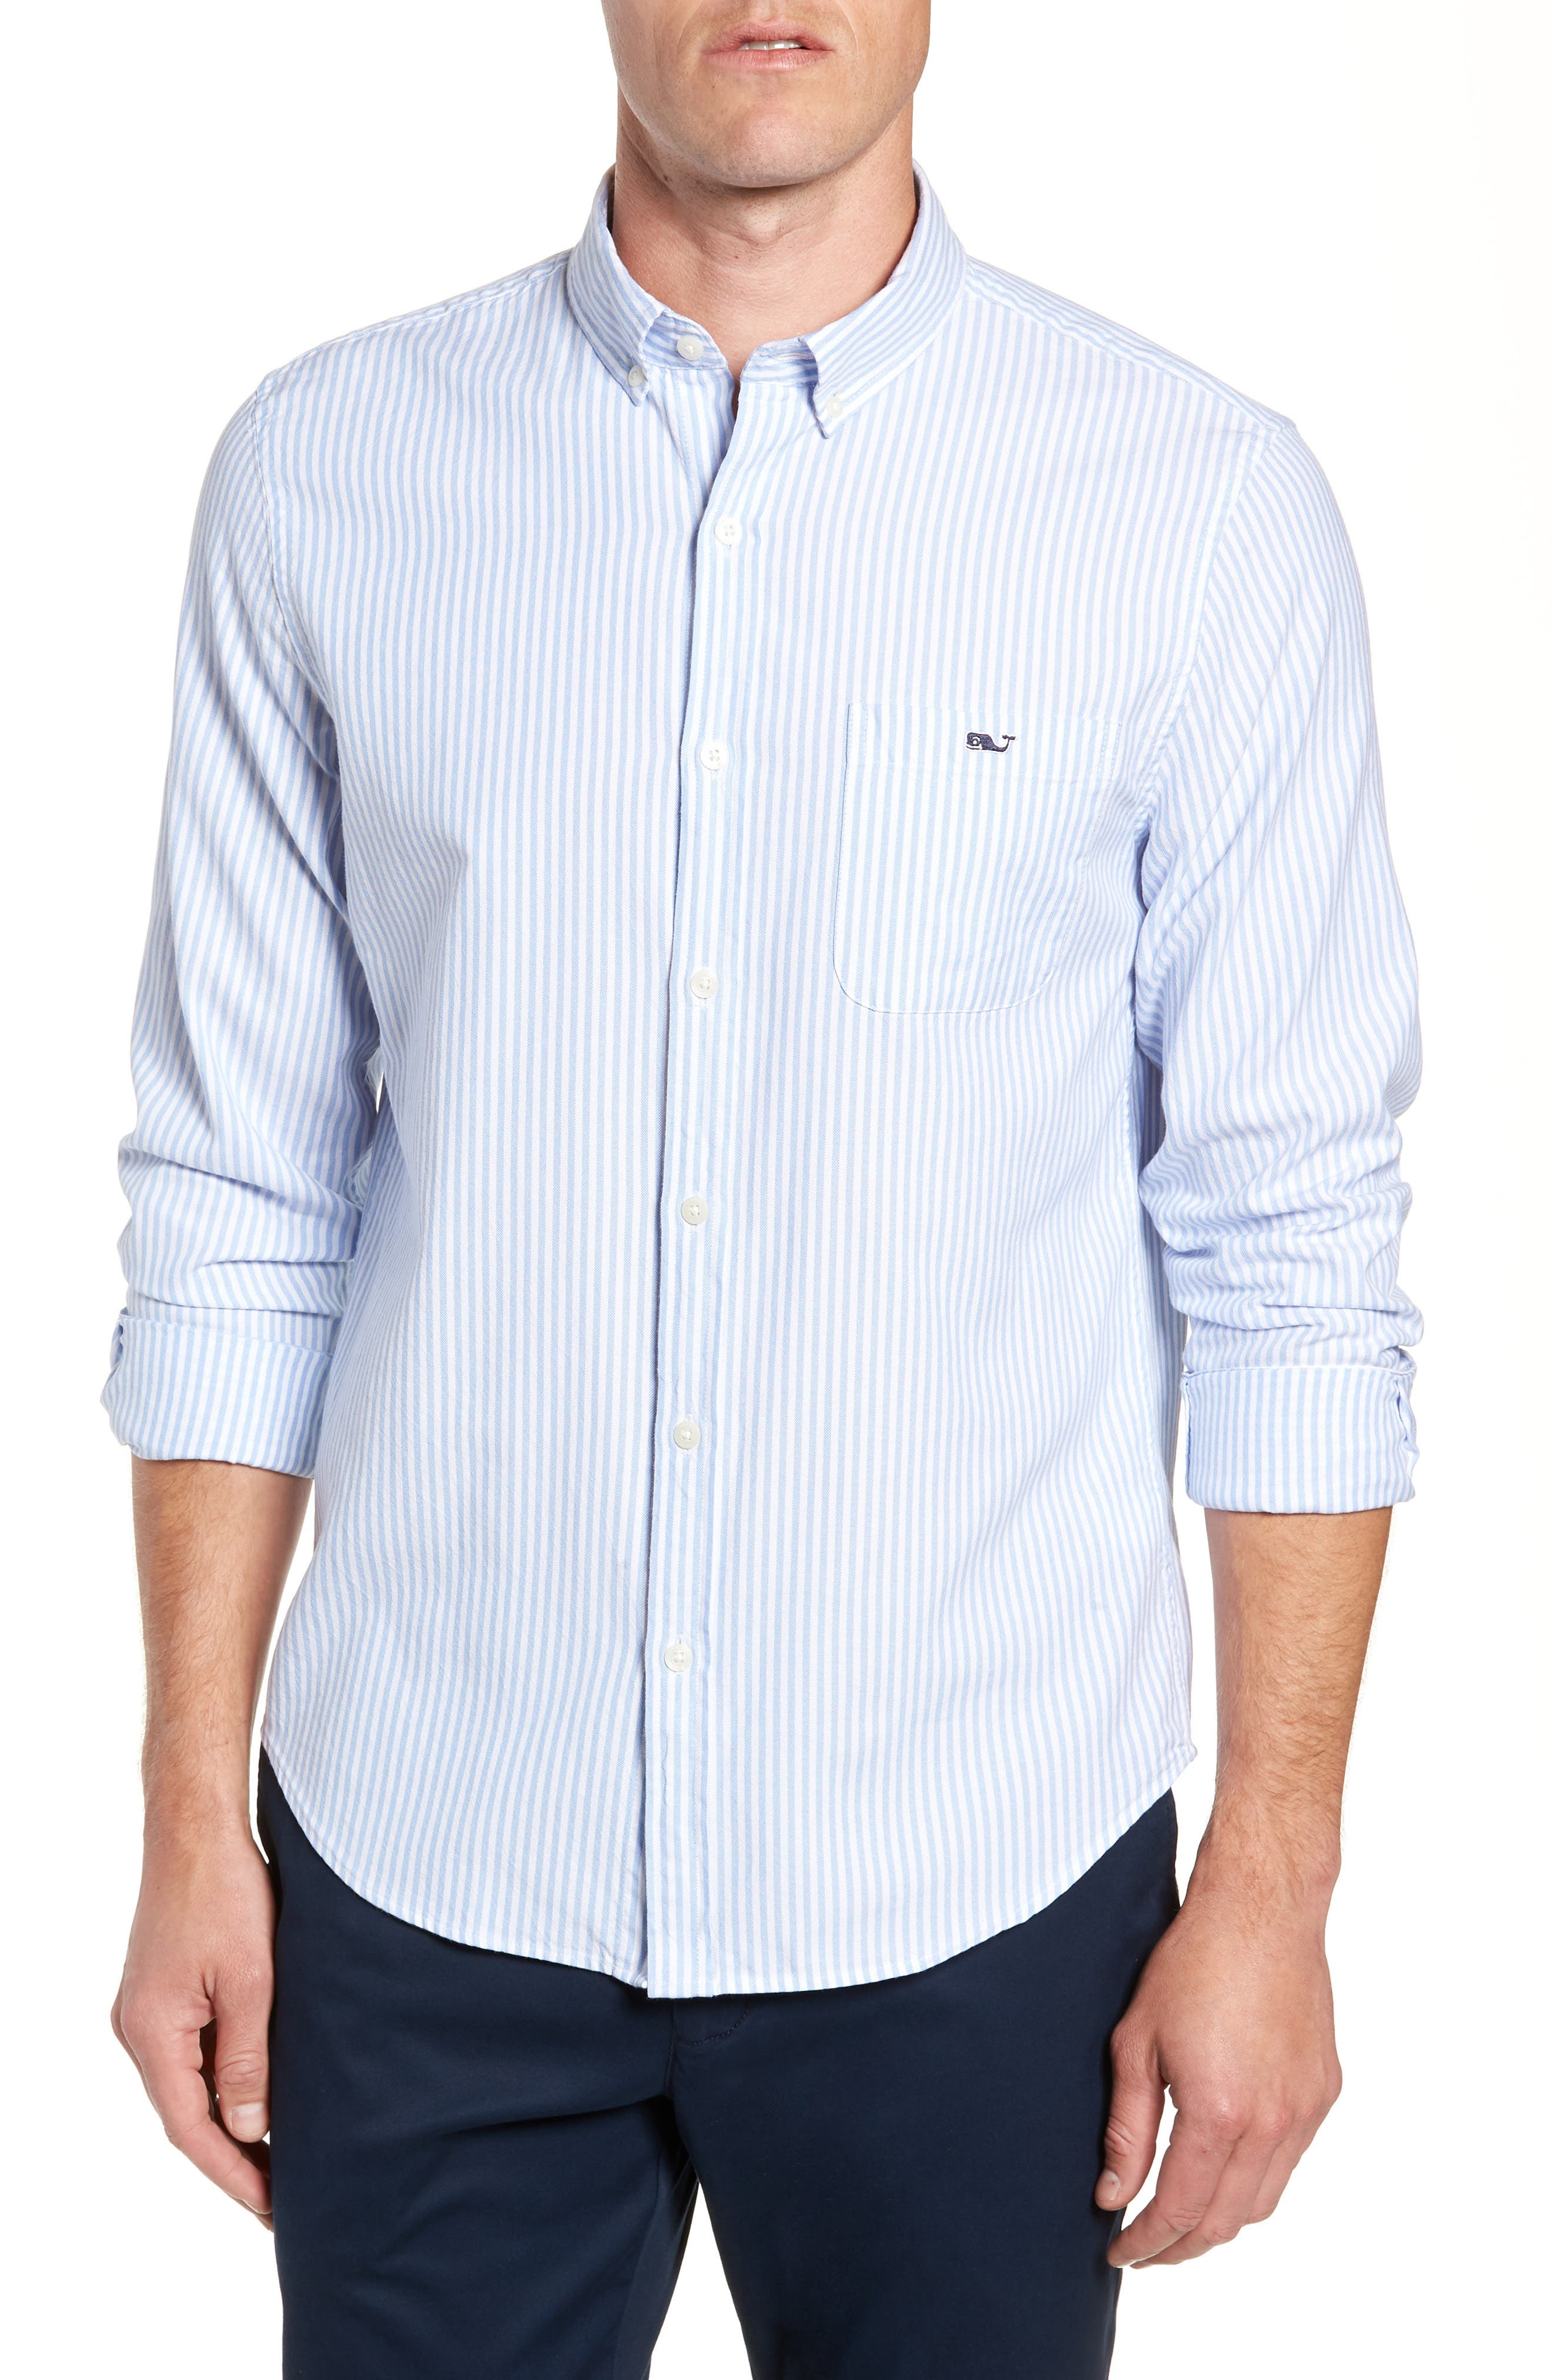 Tiloo Cay Slim Stretch Tucker Sport Shirt,                             Main thumbnail 1, color,                             484